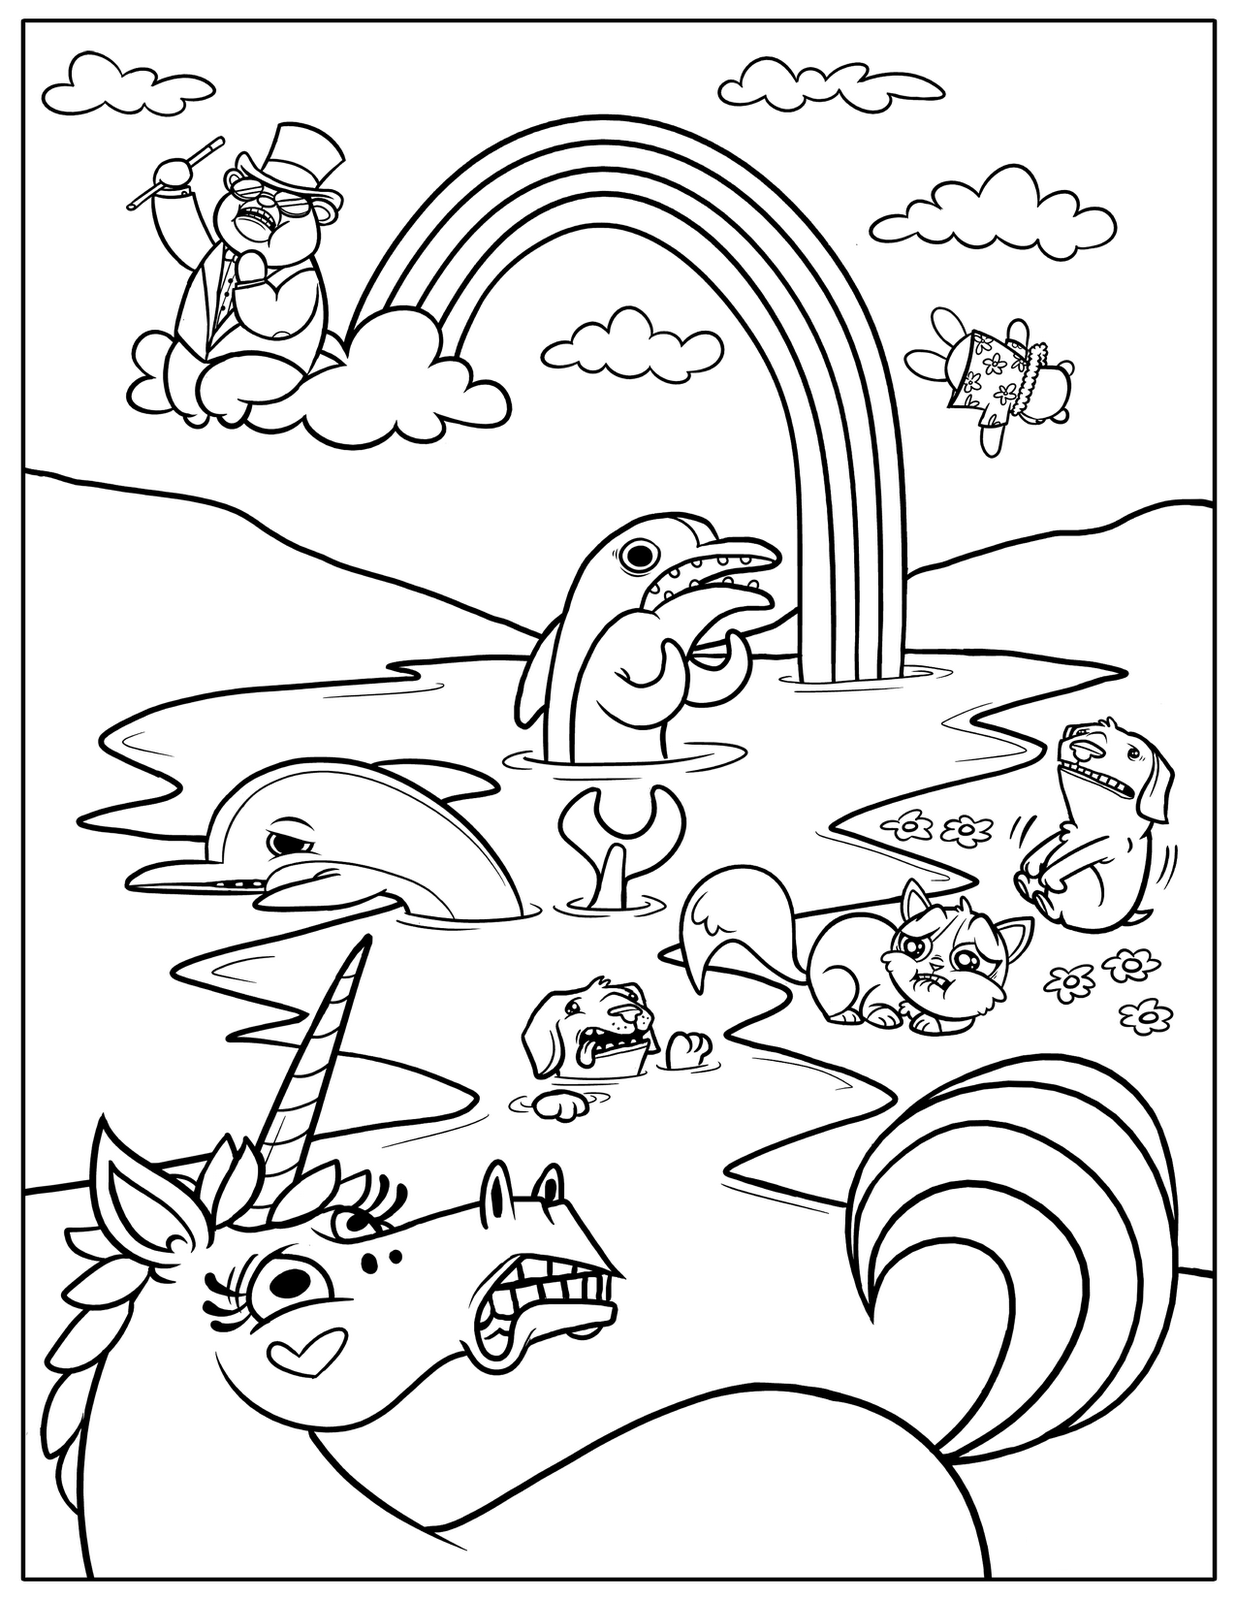 Printable color pages for kindergarten - Rainbow Coloring Pages Kids Printable